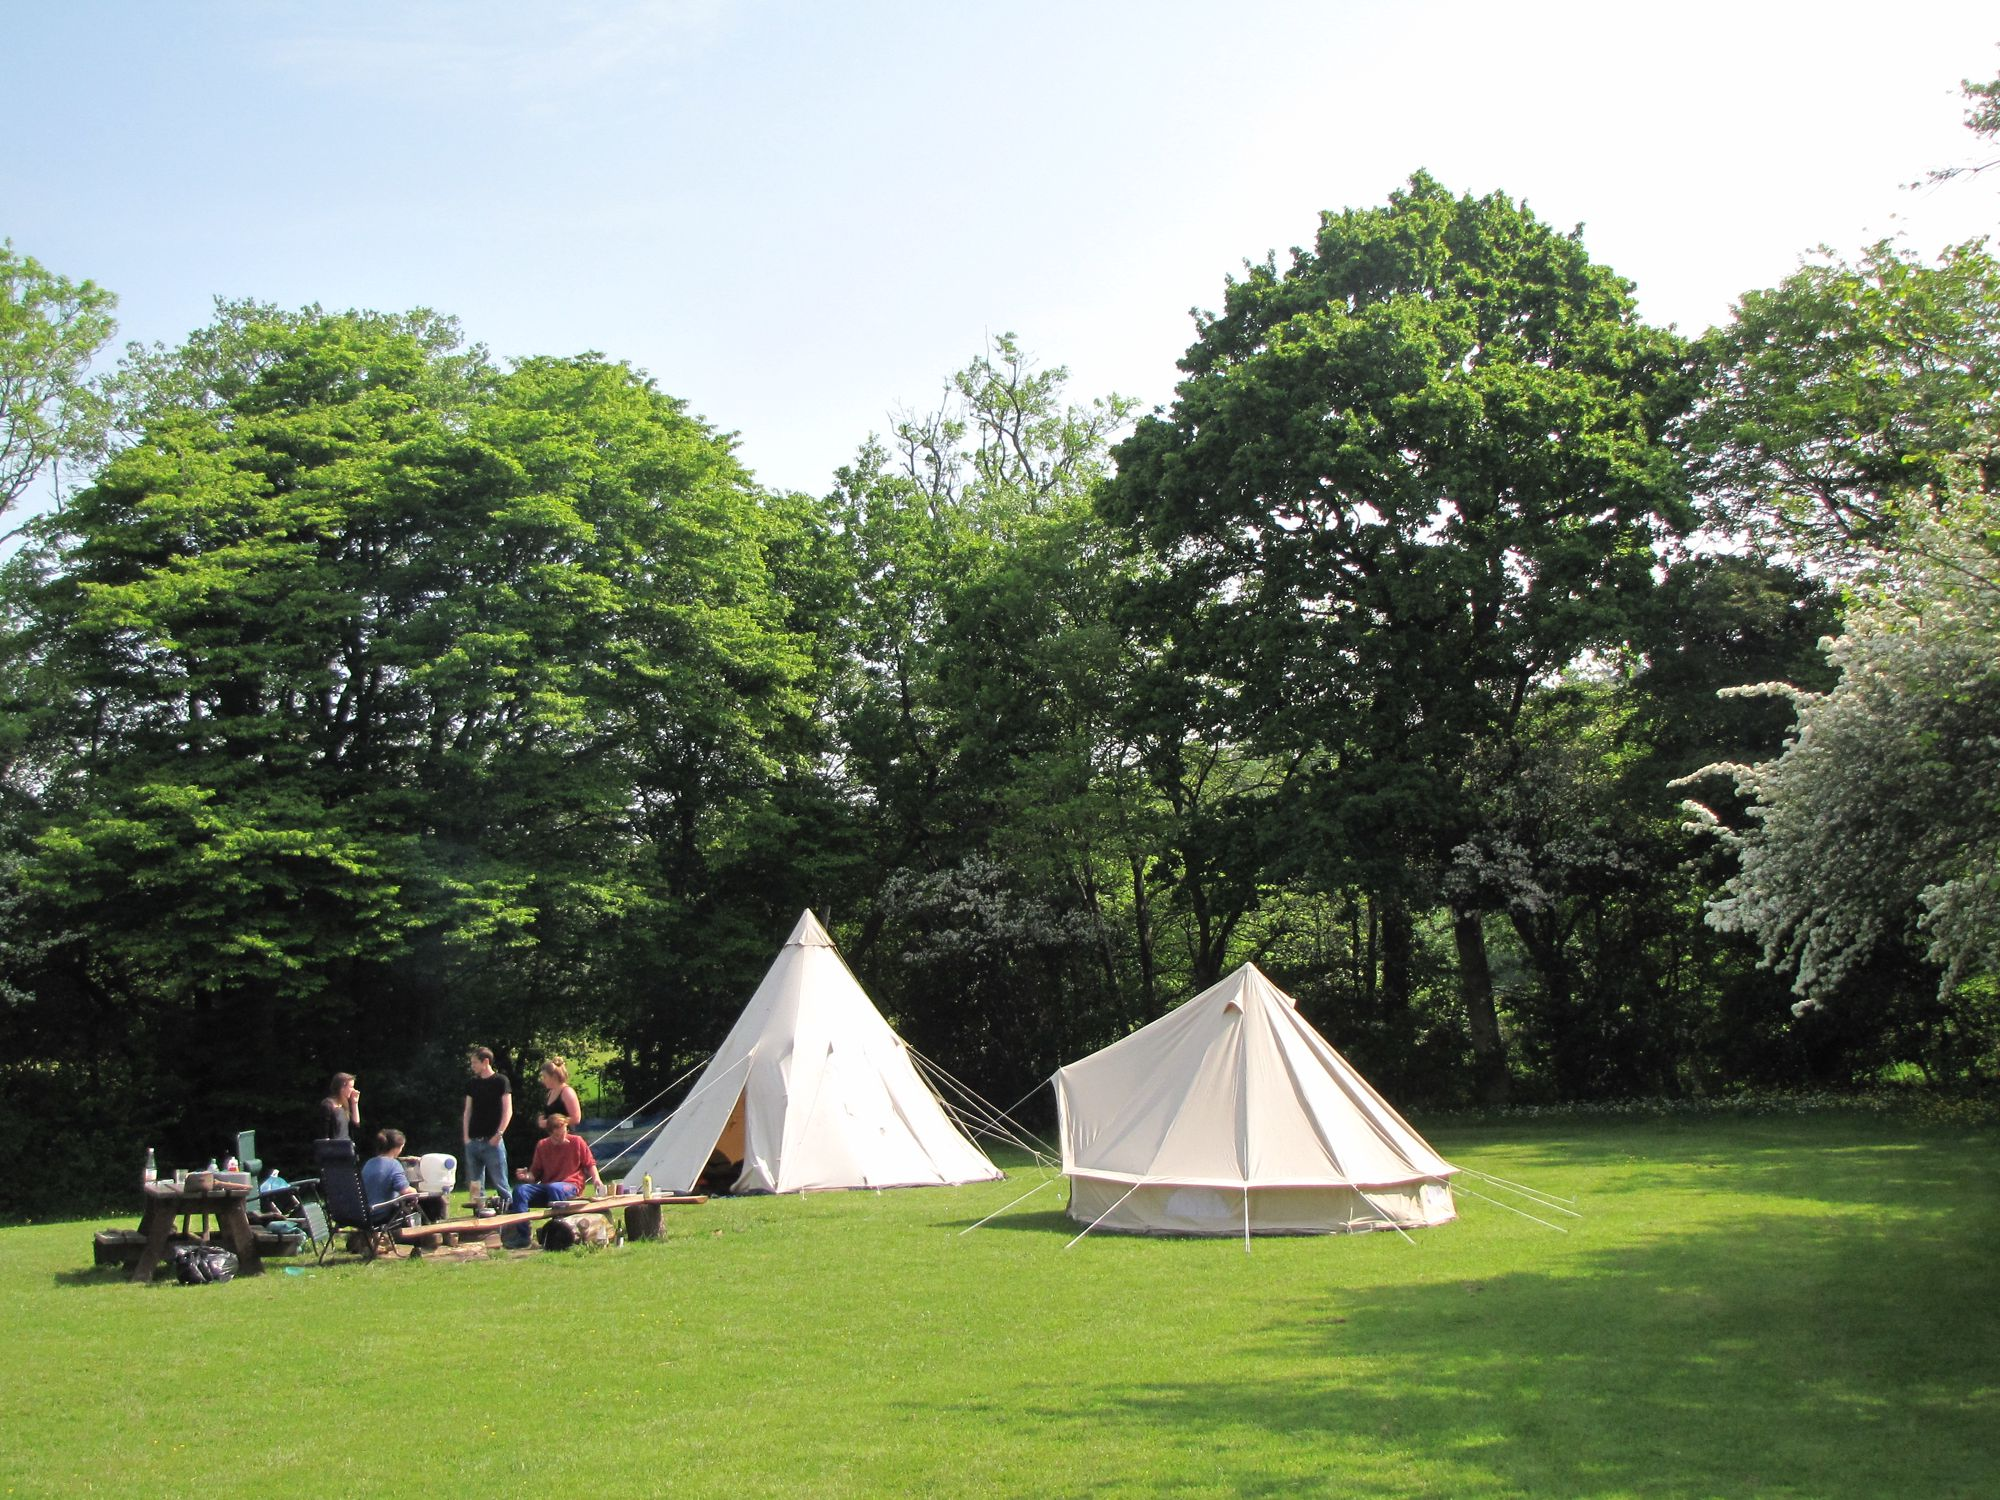 Love wild camping? This self-sustained campsite in the heart of rural Sussex is as close to wild camping as you get, but with (very) basic ablution facilities to ease you through the experience.